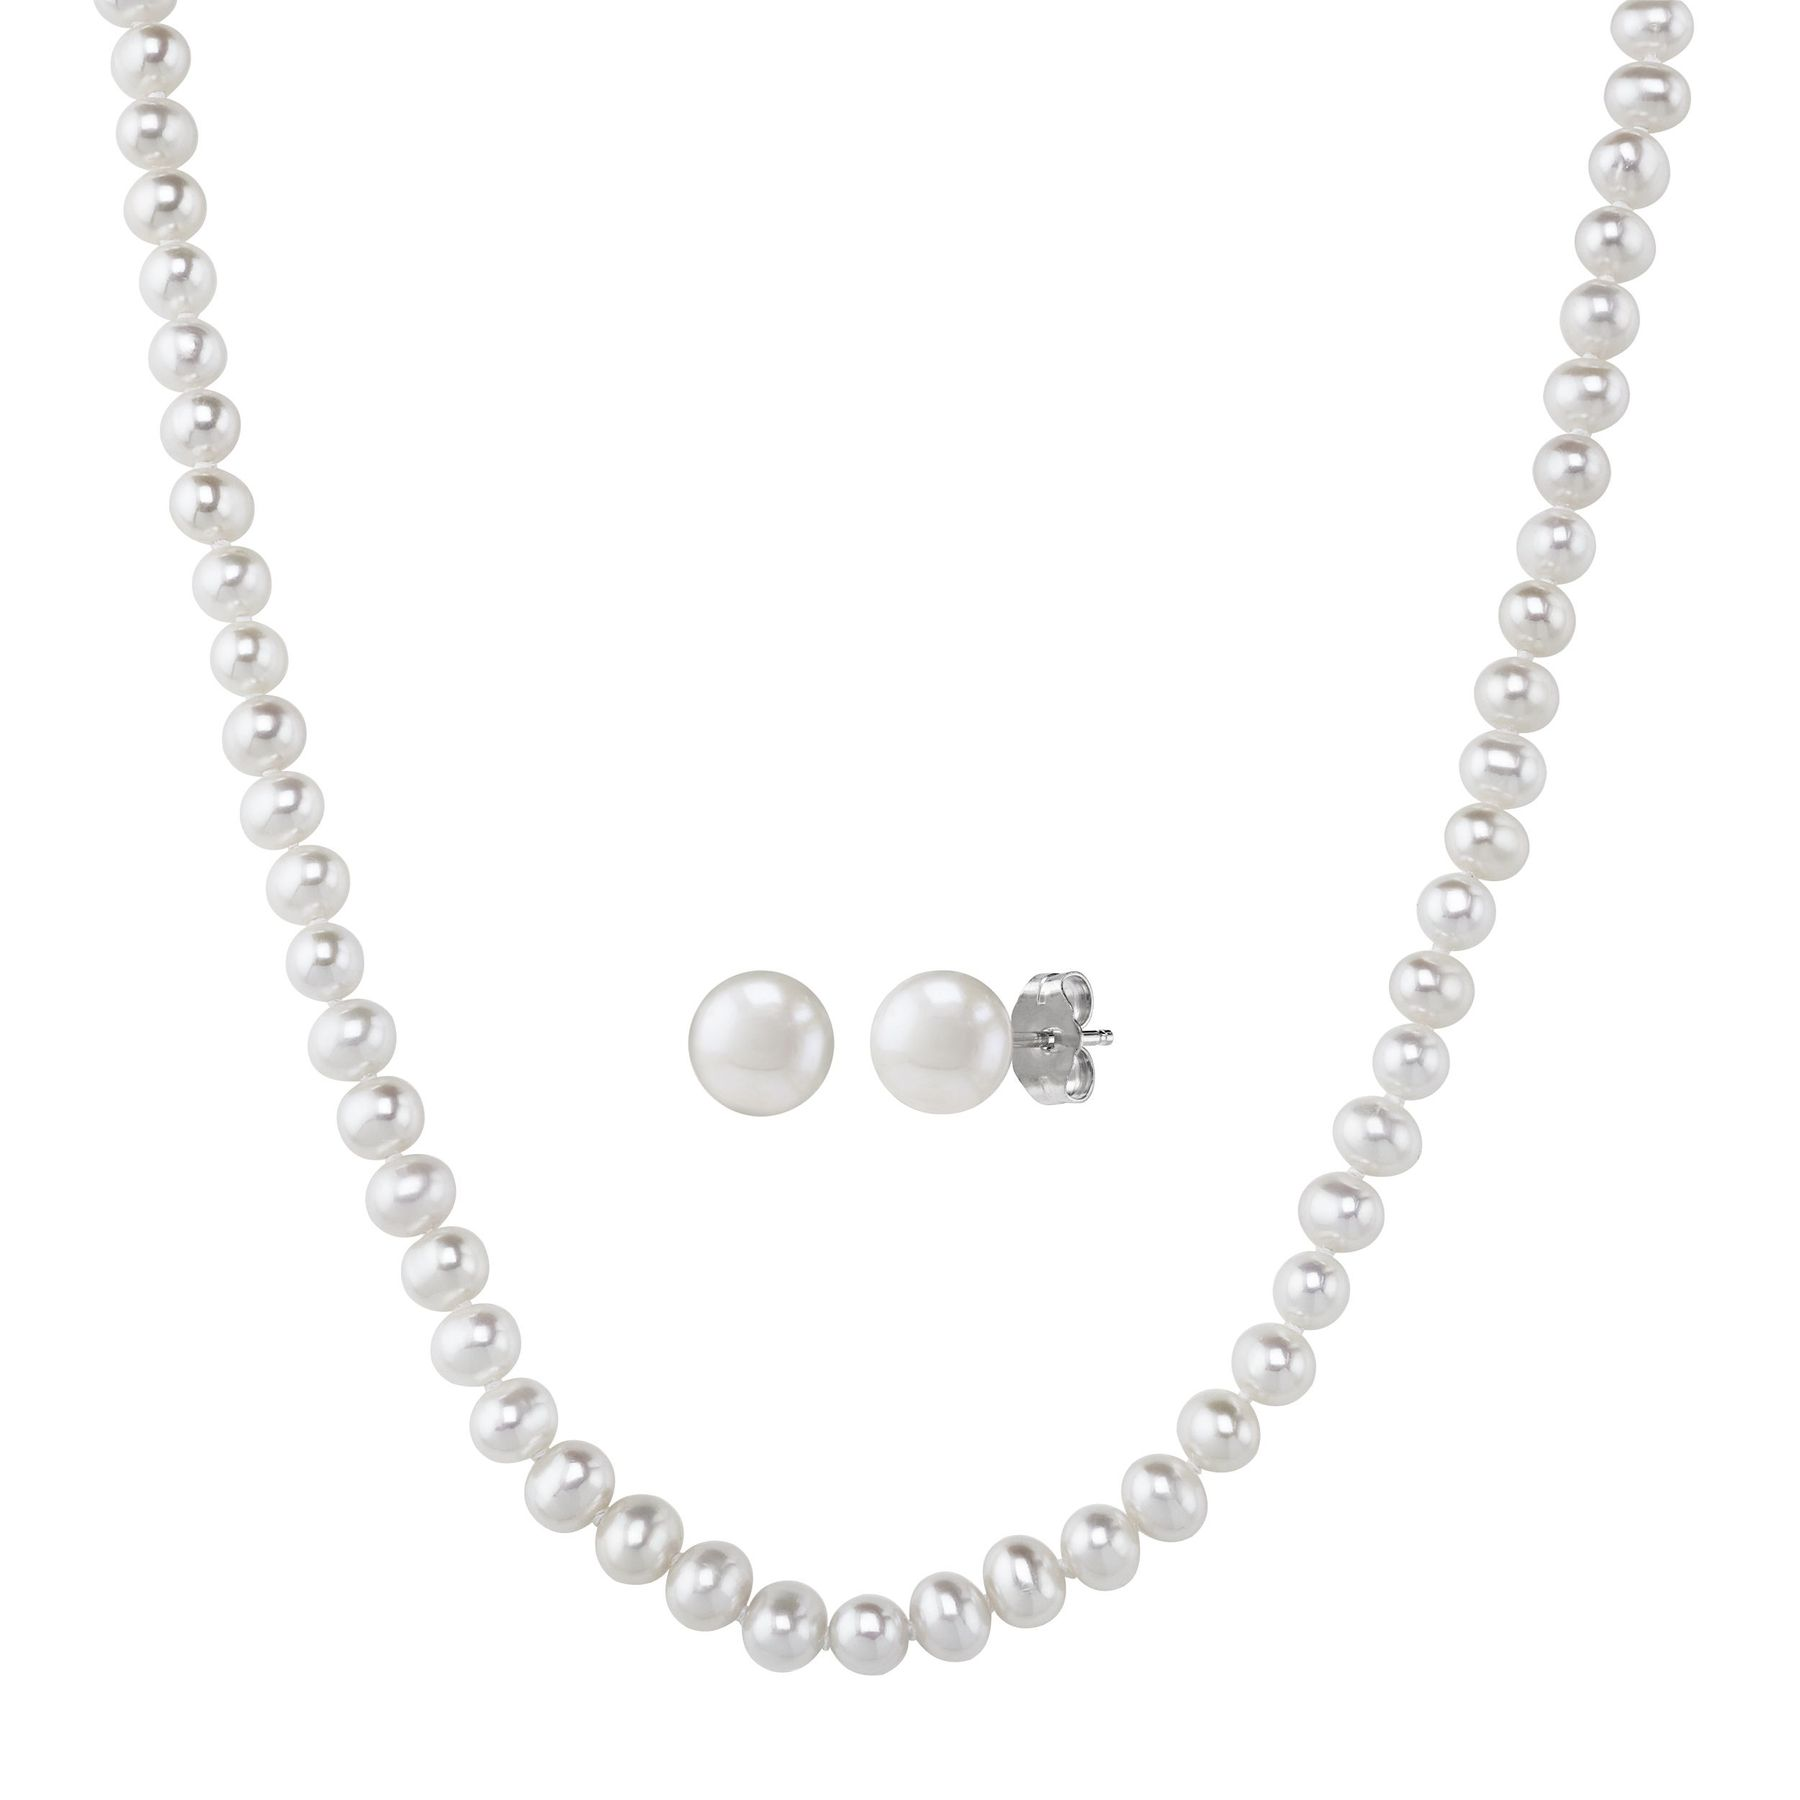 6 5 Mm 7 Pearl Necklace Earrings Set